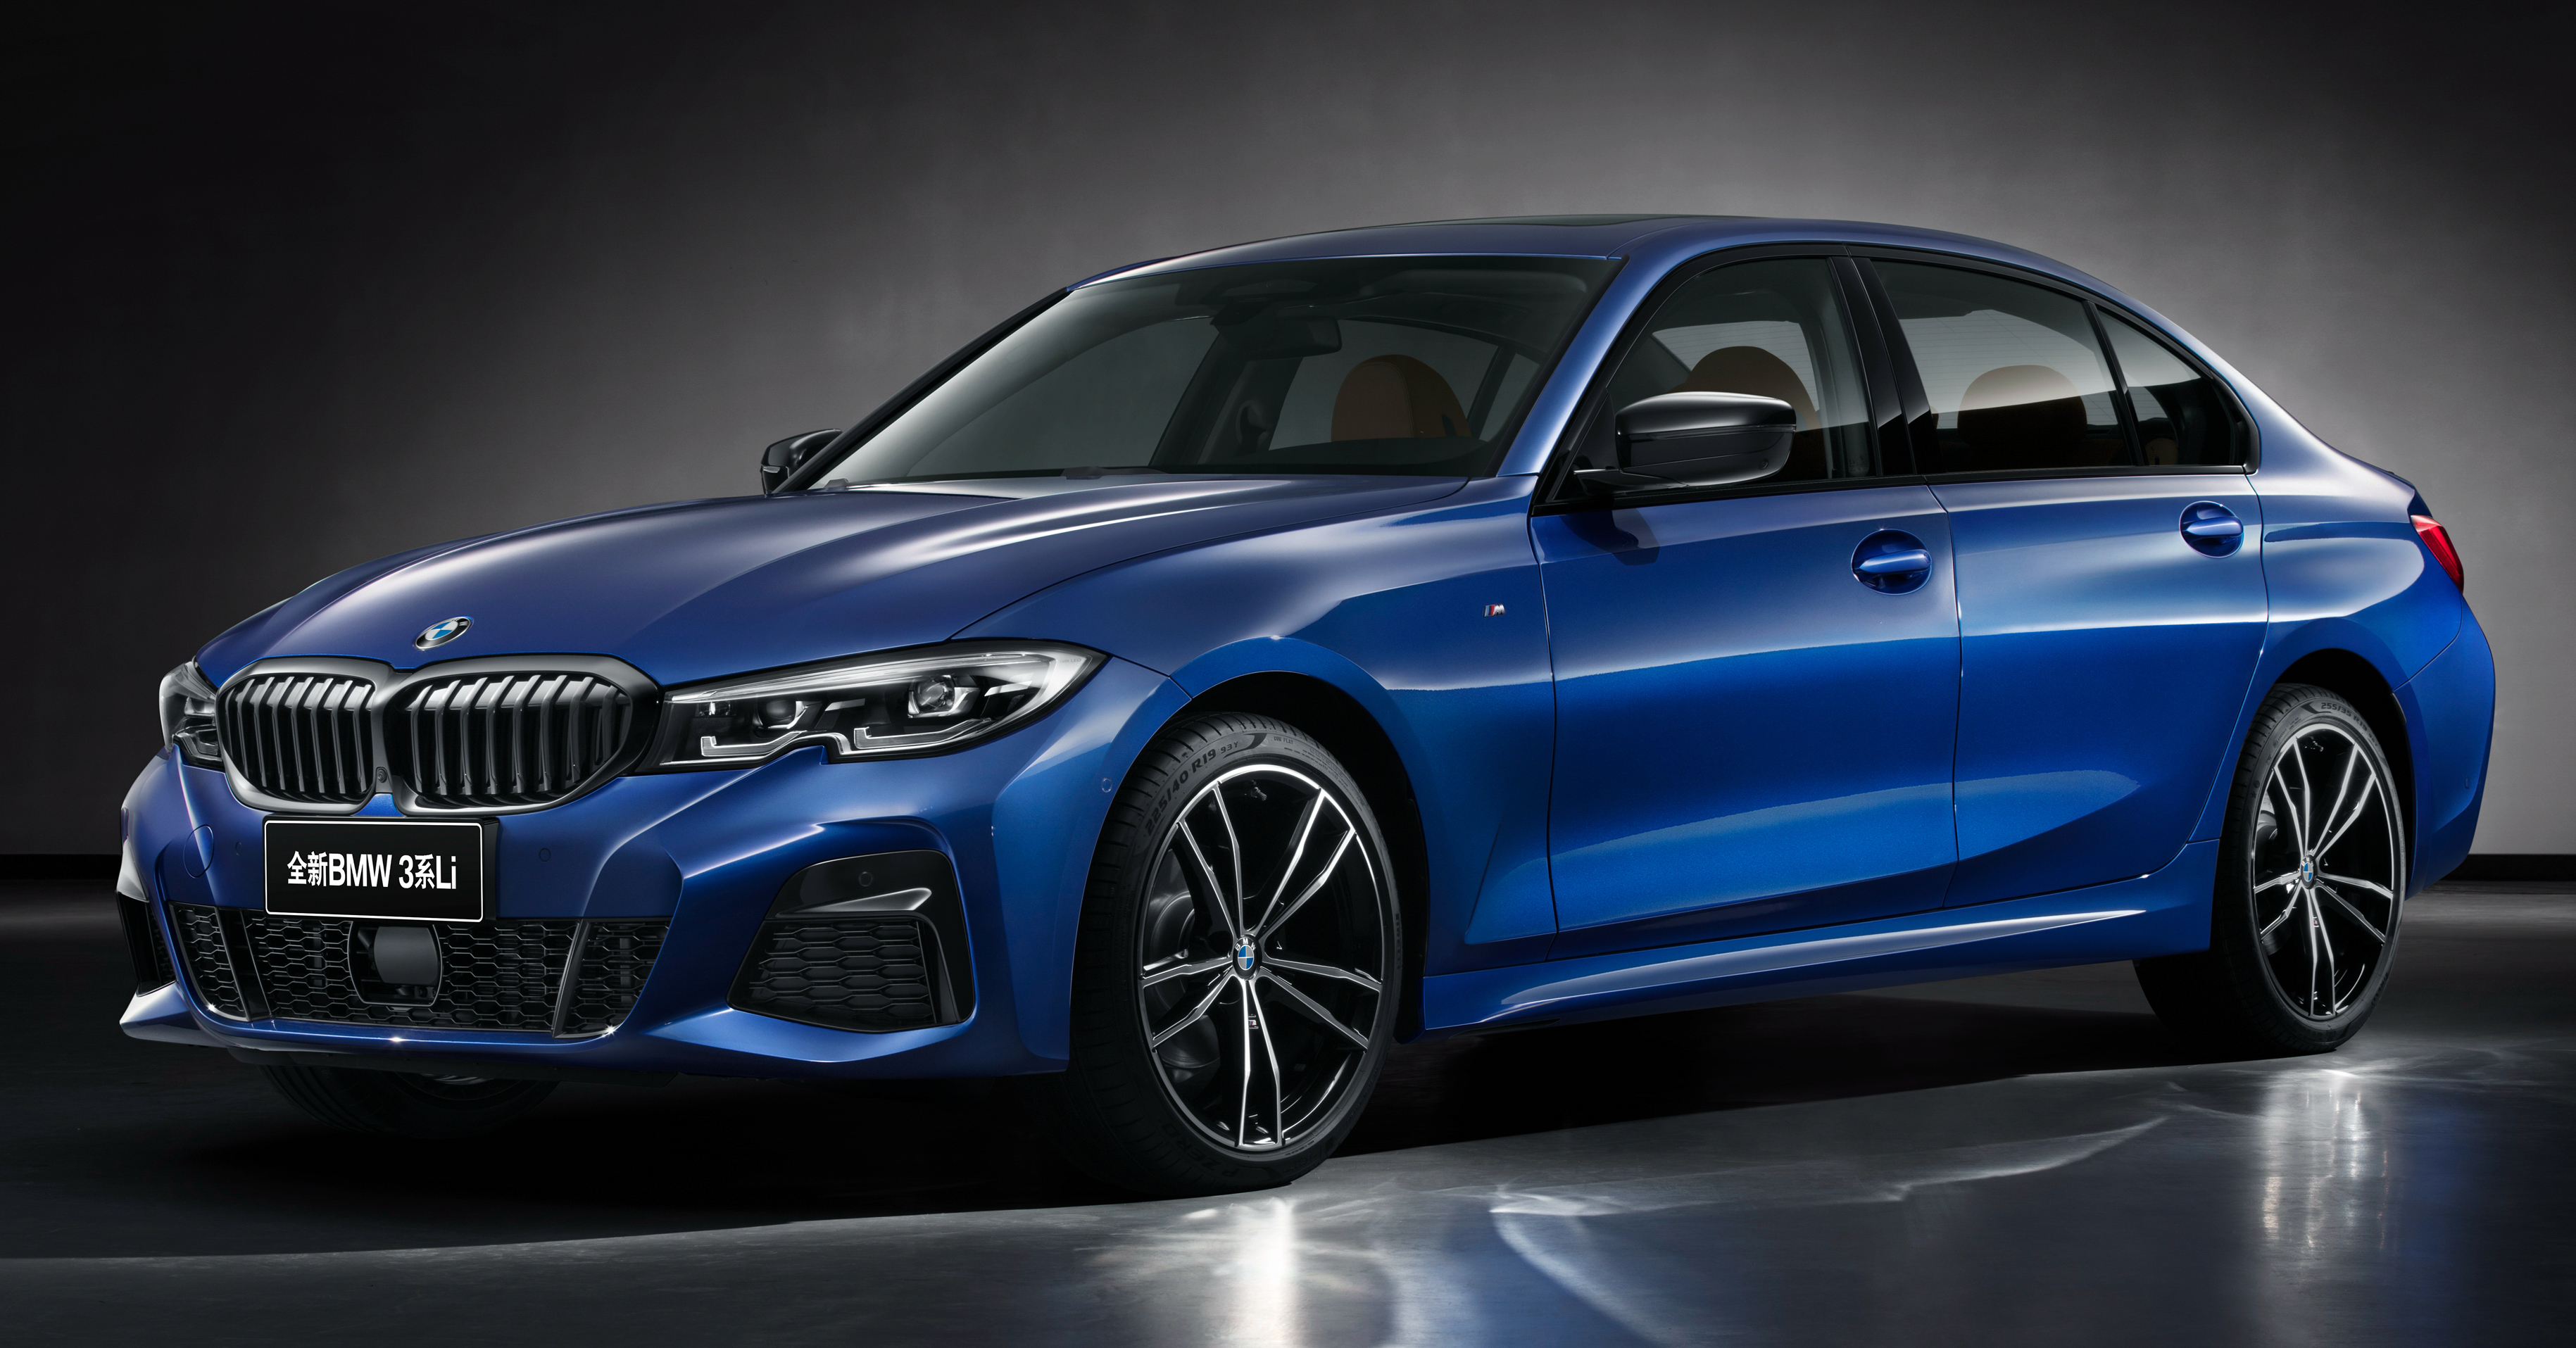 g28-bmw-3-series-li-for-china-3.jpg